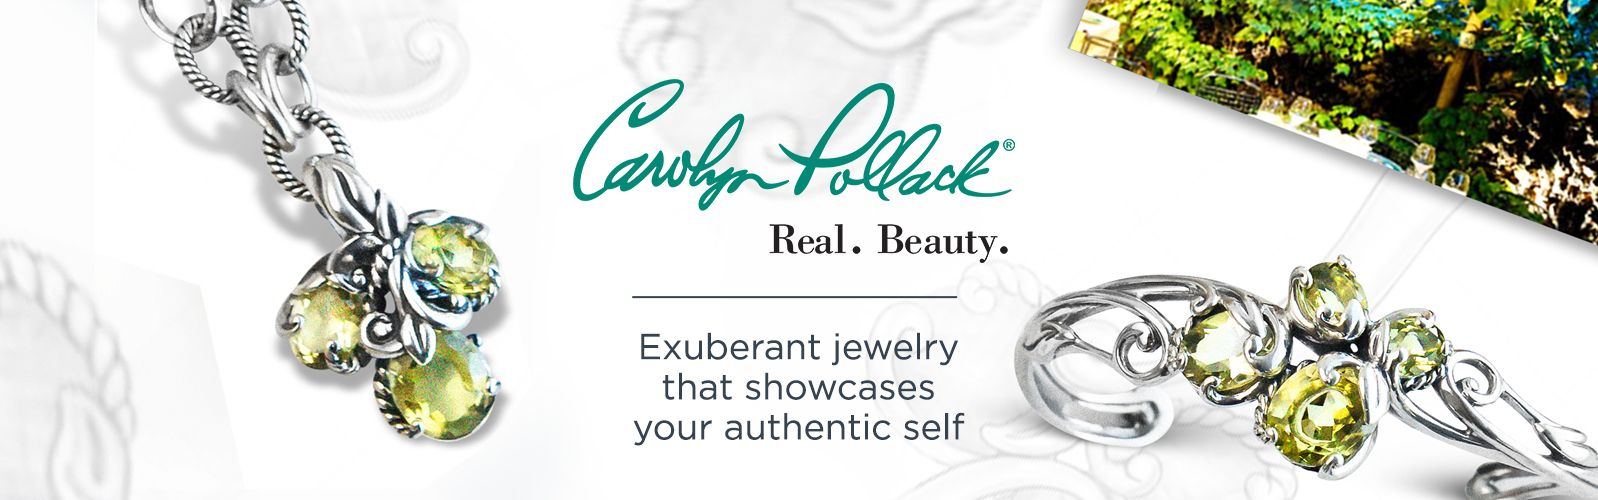 Carolyn Pollack. Exuberant jewelry that showcases your authentic self